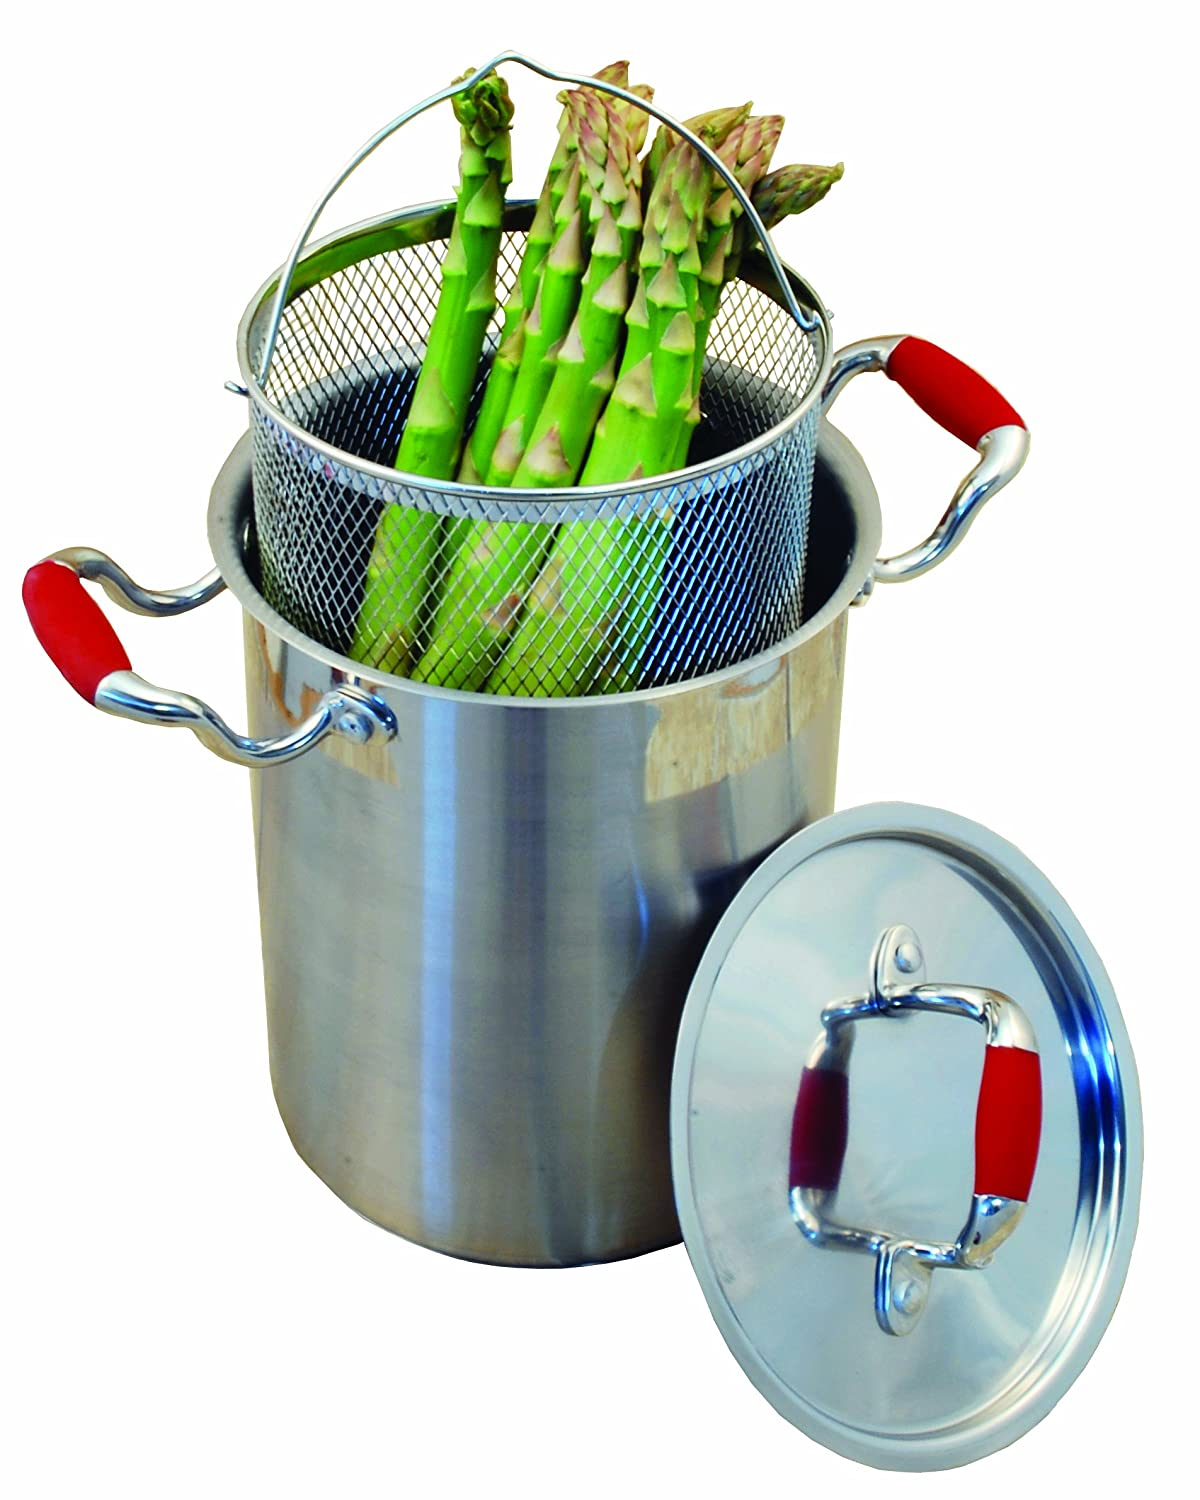 ExcelSteel Stainless Steel Vegetable Cooker, 4-1/4 Quantity, Pot